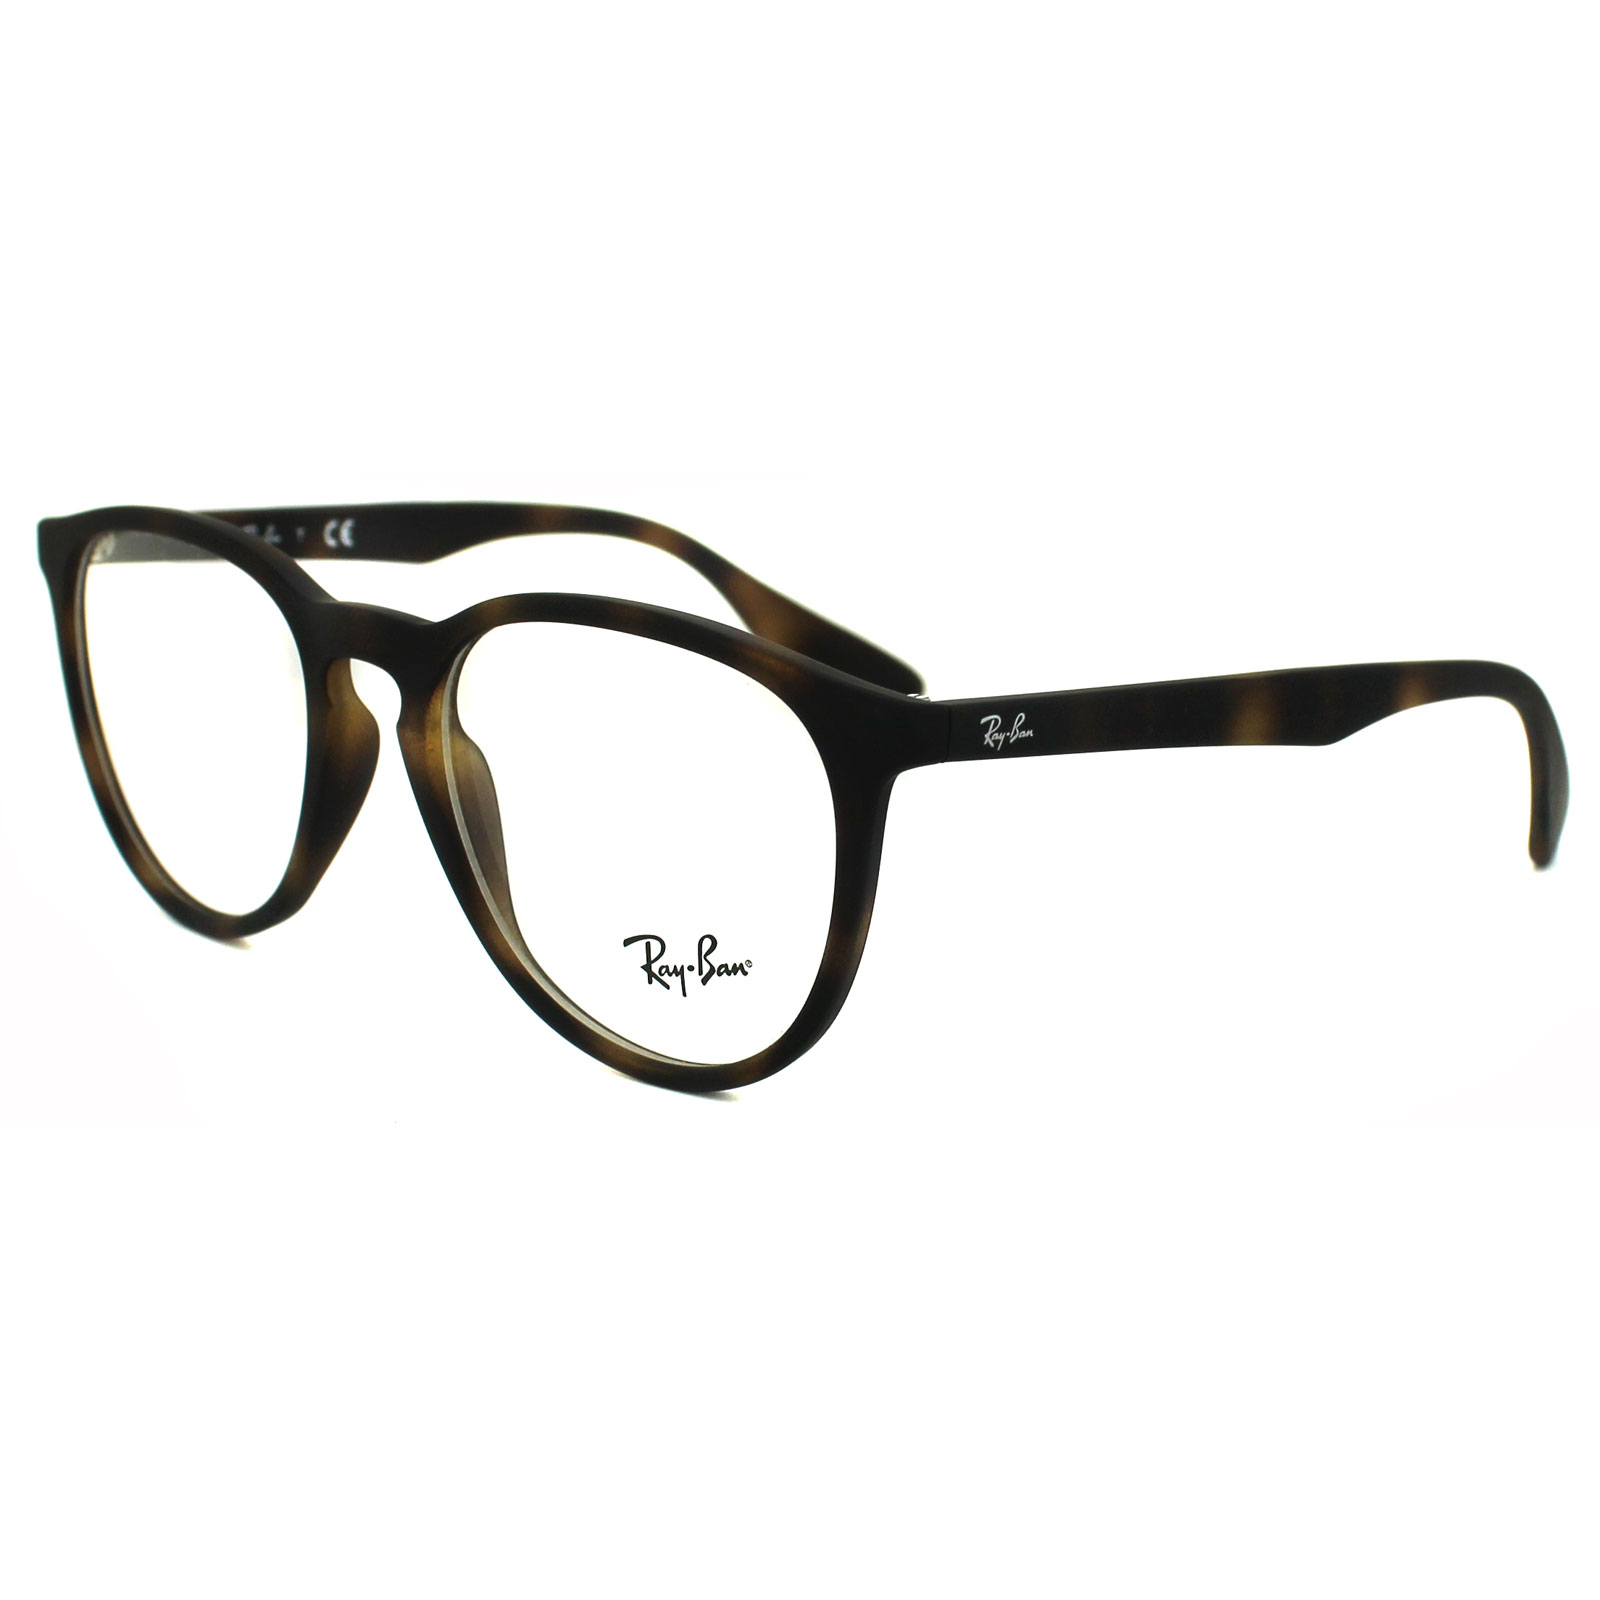 Ray-Ban Glasses Frames 7046 5365 Rubberised Havana 8053672357844 | eBay